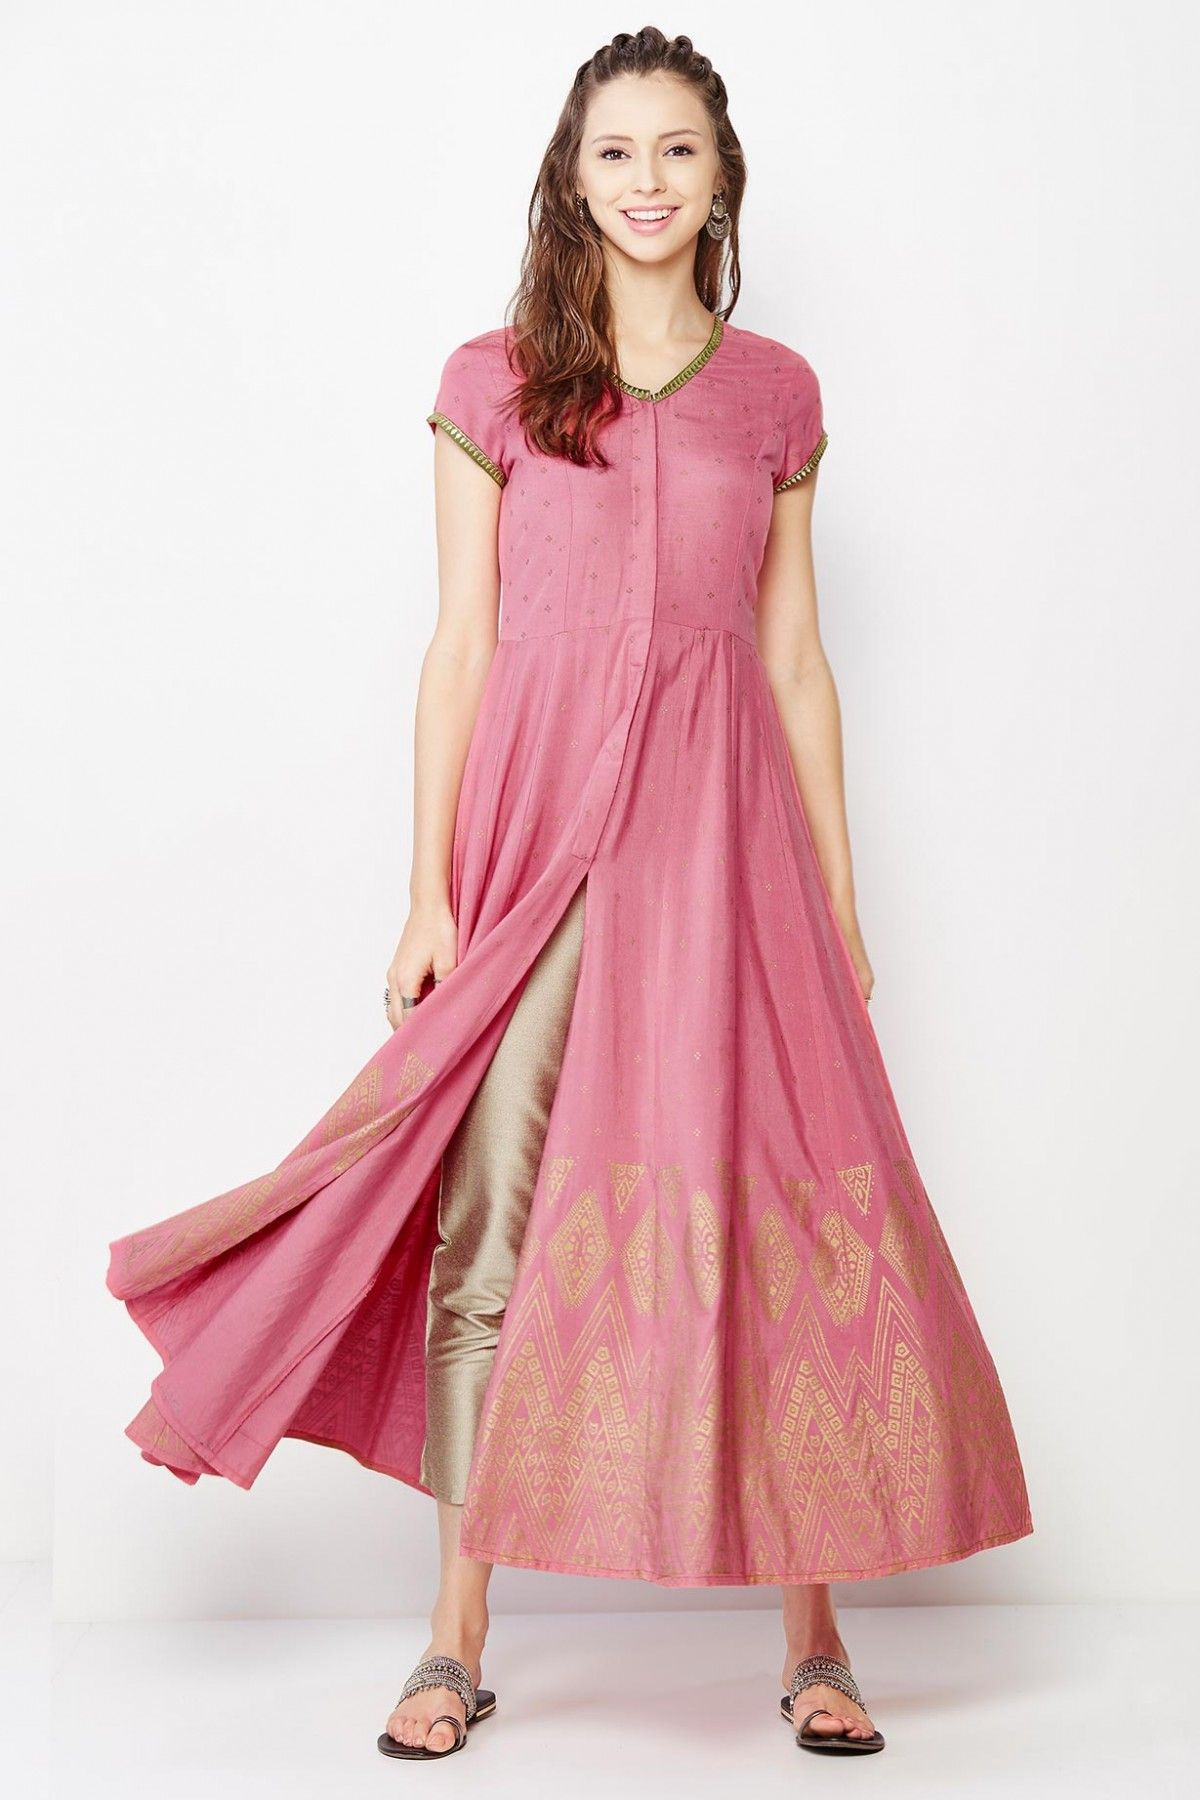 35f30bed9a Gia Pink Coordinates - Buy Gia Pink Coordinates - AW16V392132P406- Suit for  Women - Global Desi by Anita Dongre